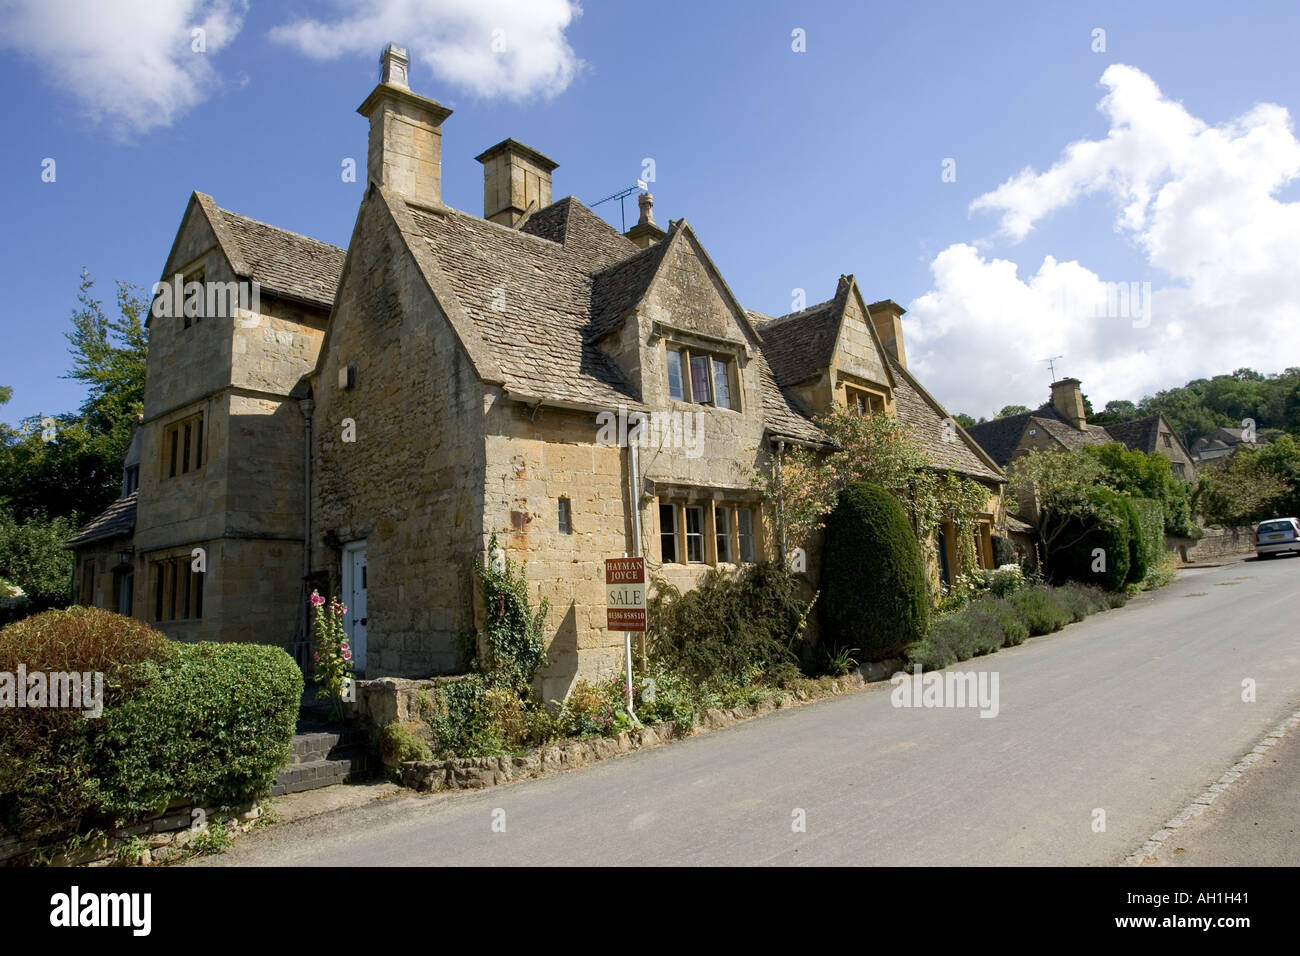 properties dreamy sale uk cotswold property the savills cotswolds news for lifestyle scotland old in adze cottages cottage